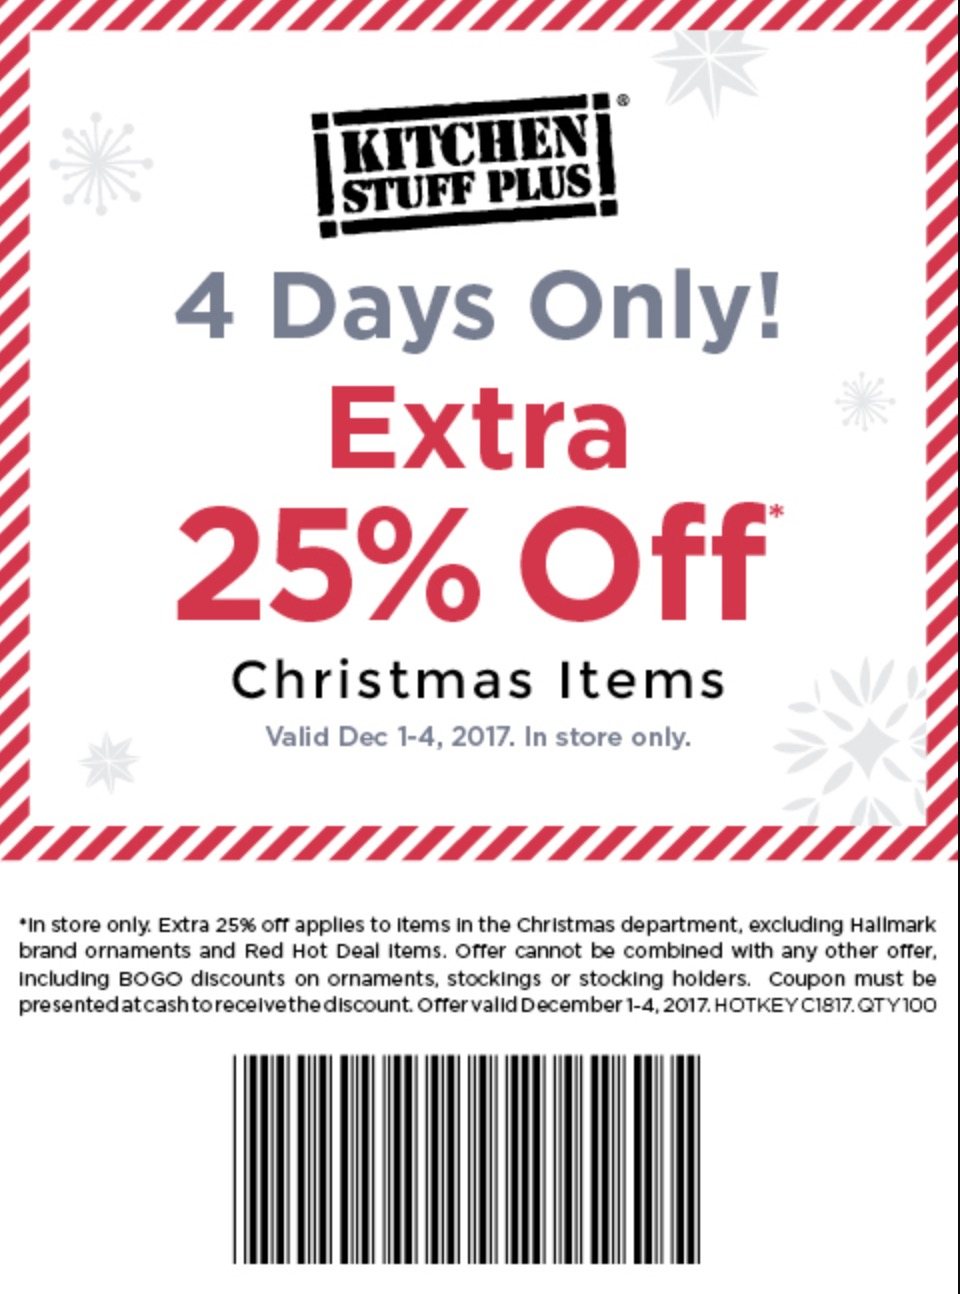 kitchen stuff plus canada has an awesome coupon valid for 4 days only from today friday december 1 2017 until monday december 4 2017 - Kitchen Stuff Plus